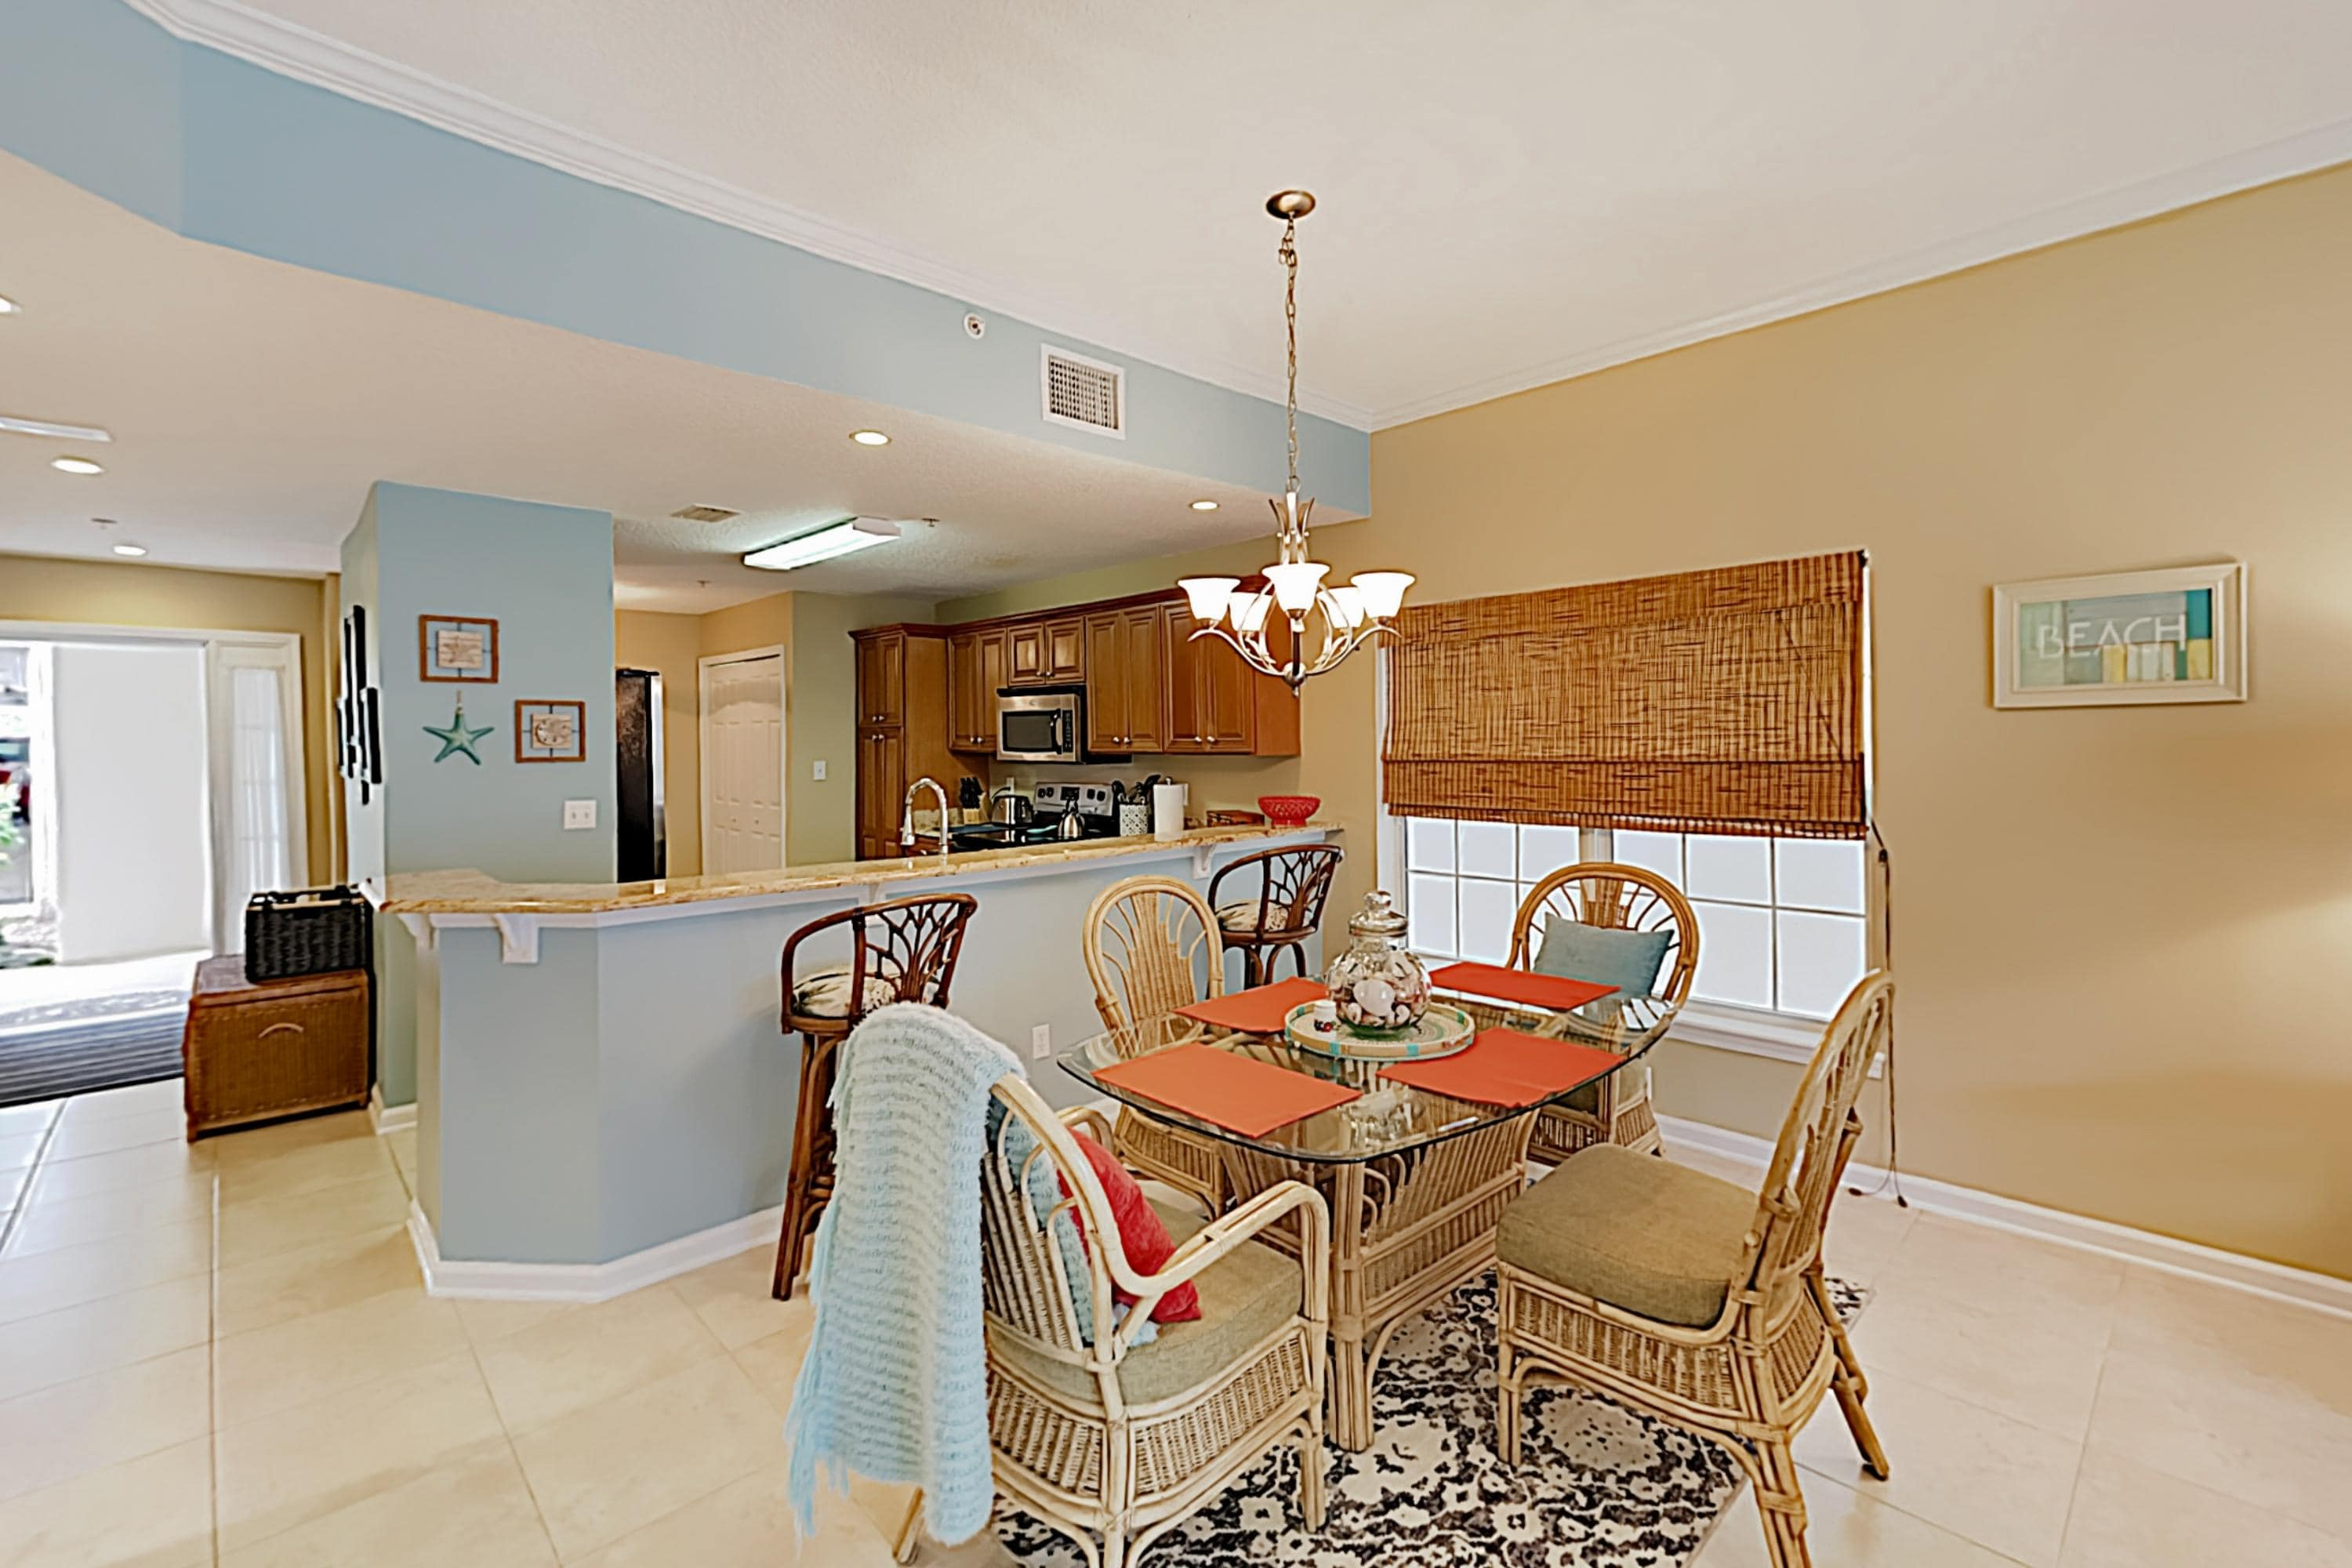 Property Image 2 - Sunny Poolside Condo w/ Hot Tub & Beach Access